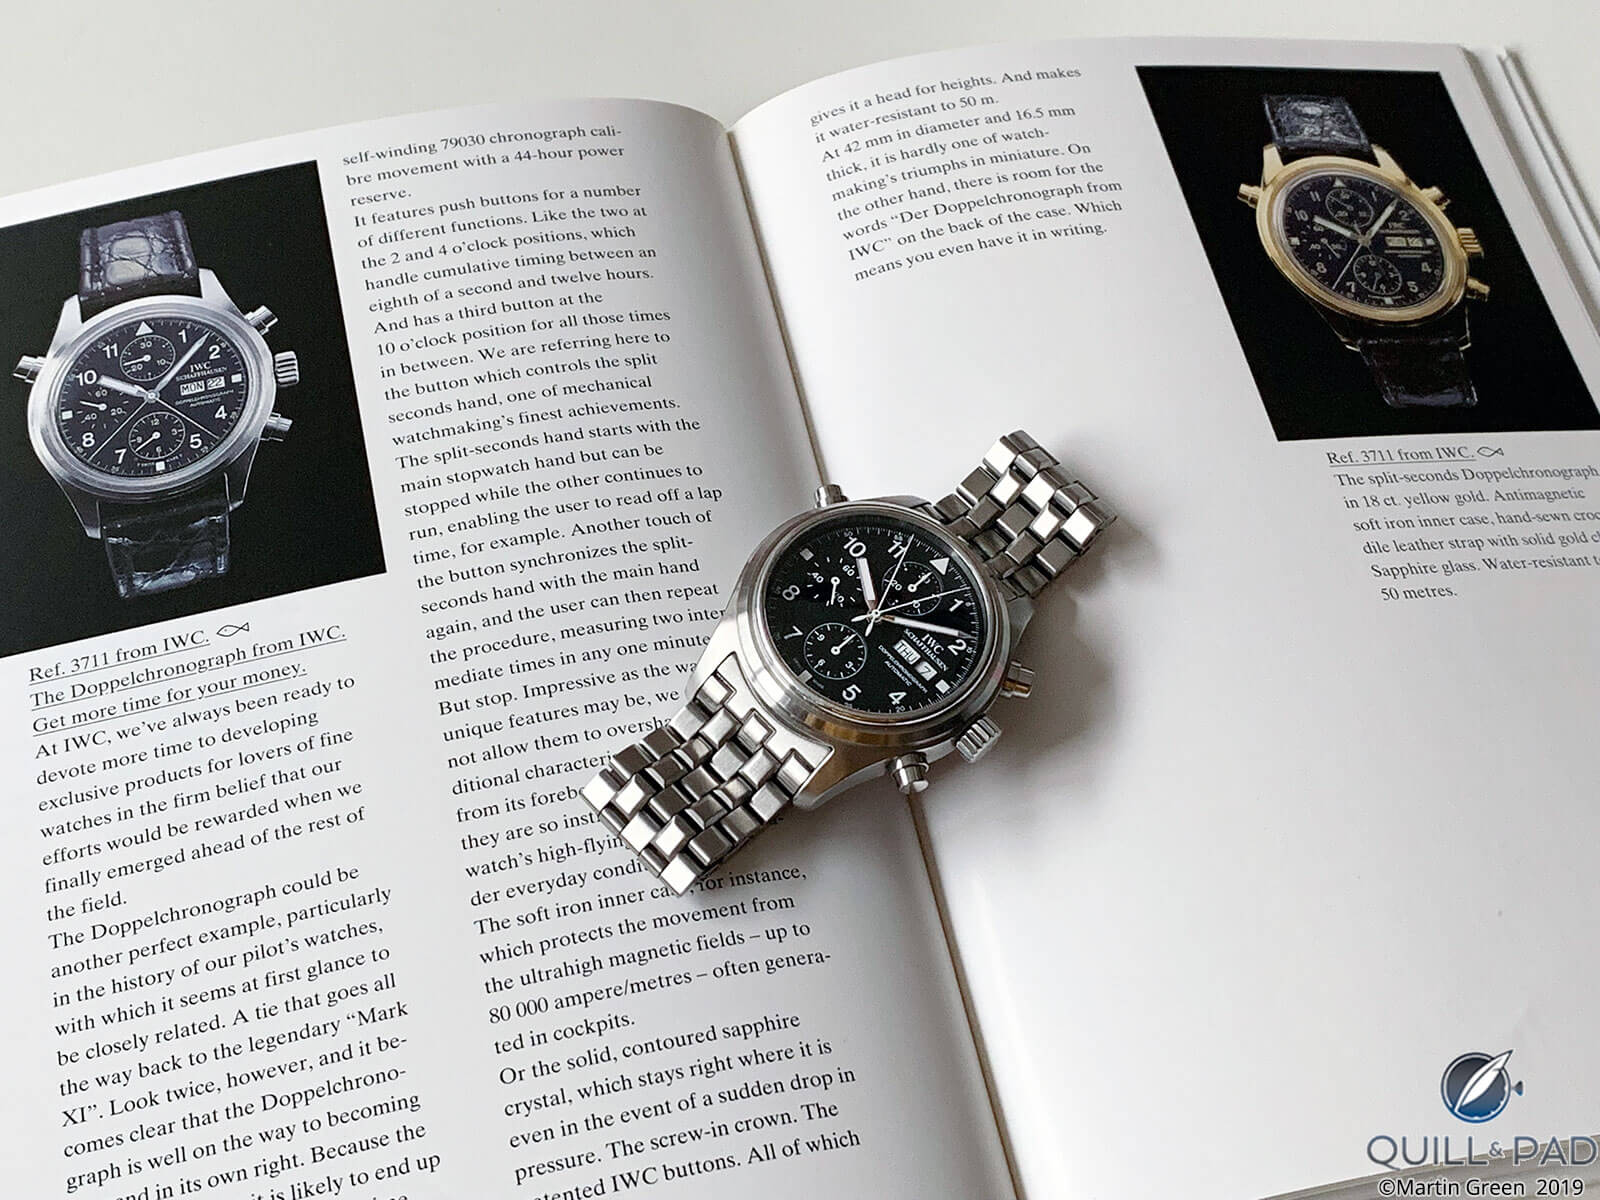 Der Doppelchronograph from the 1993 IWC calalog